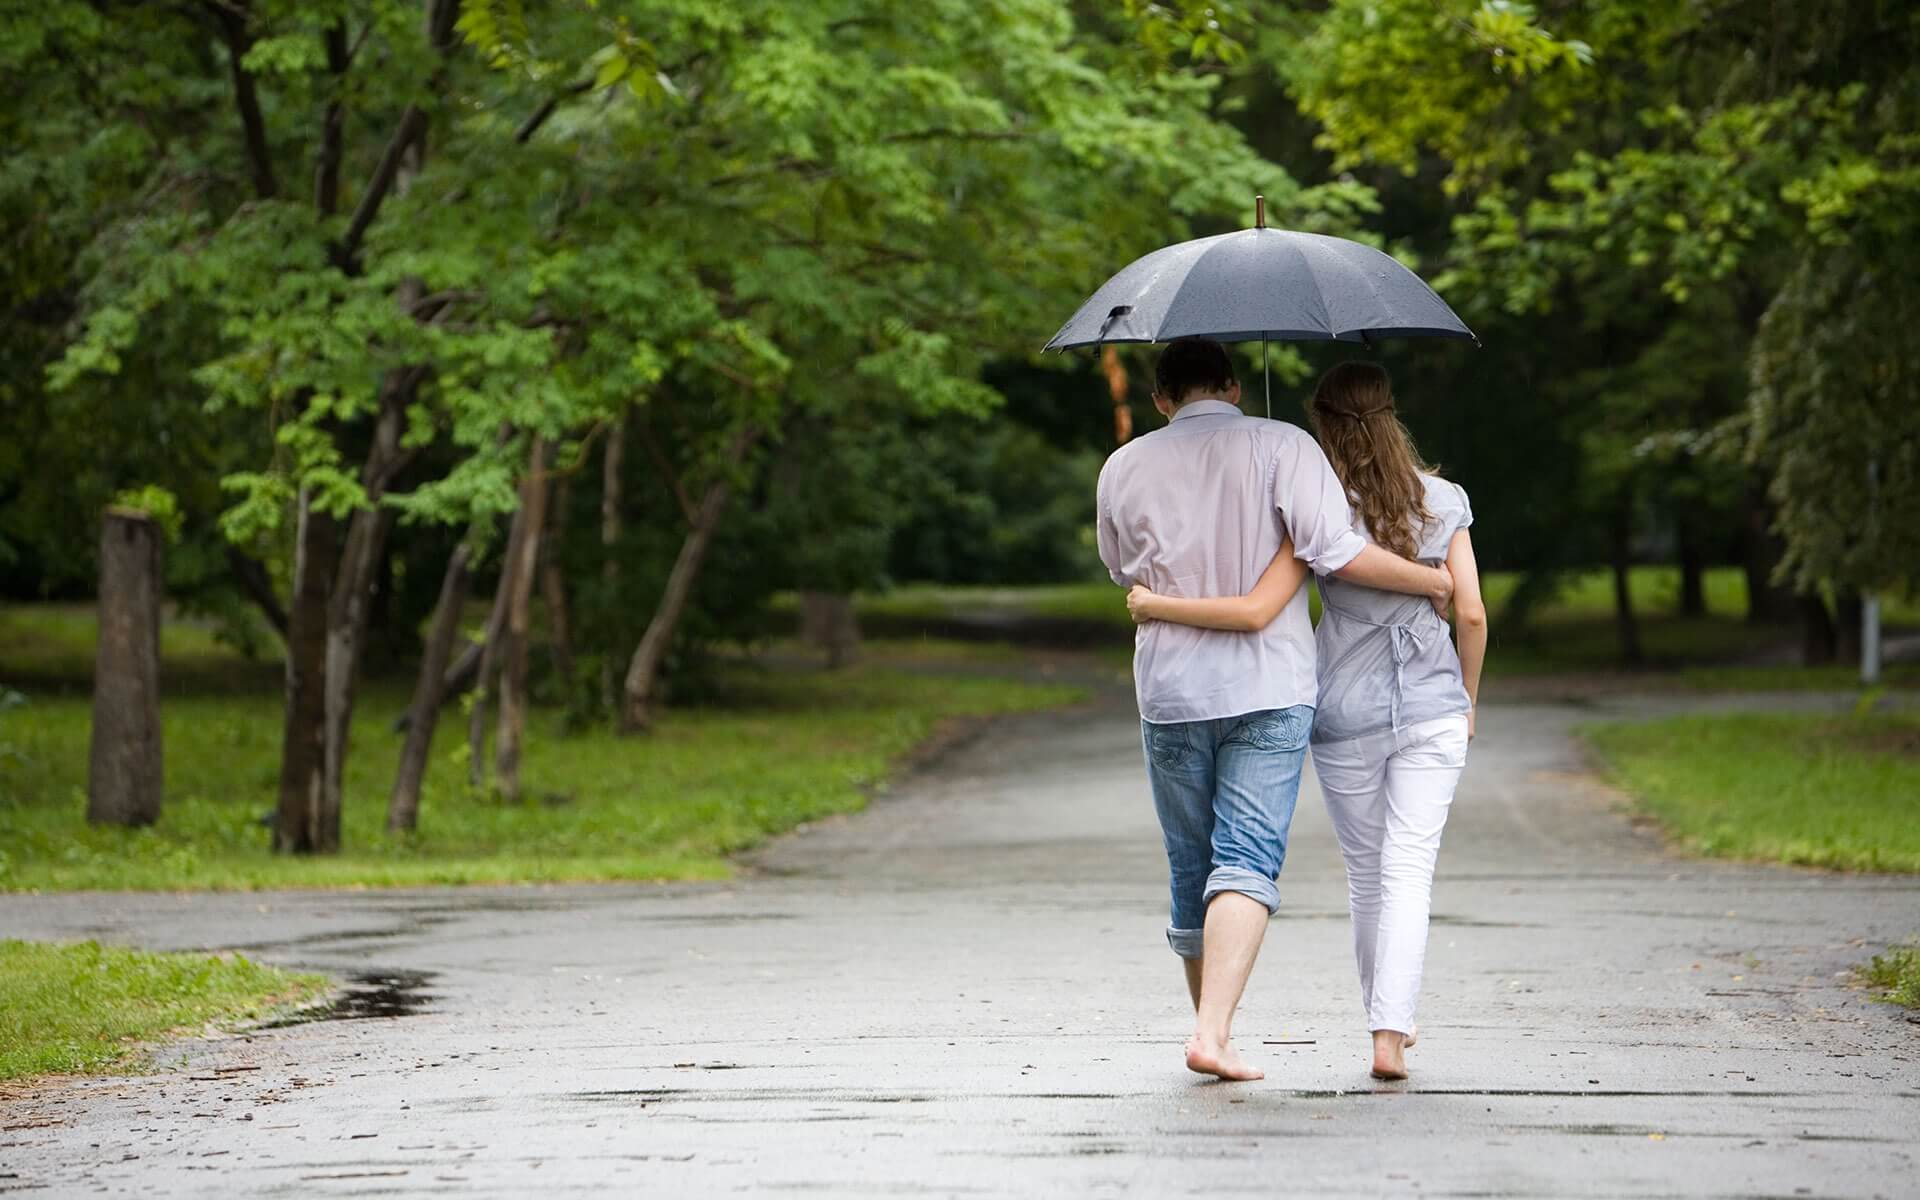 a couples walk in rain